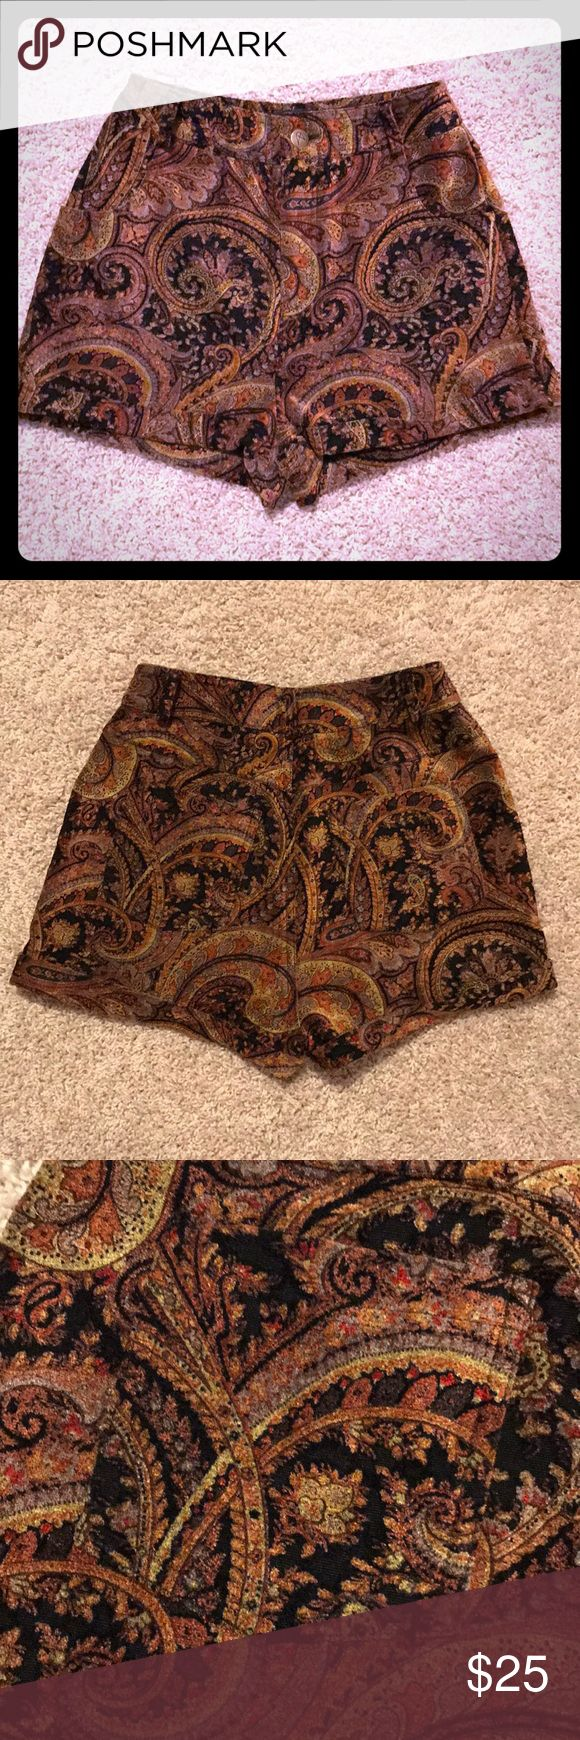 Urban Outfitters MinkPink Paisley Velour Shorts High waisted paisley velour shorts Great paired with tights and boots  MinkPink for Urban Outfitters MINKPINK Shorts